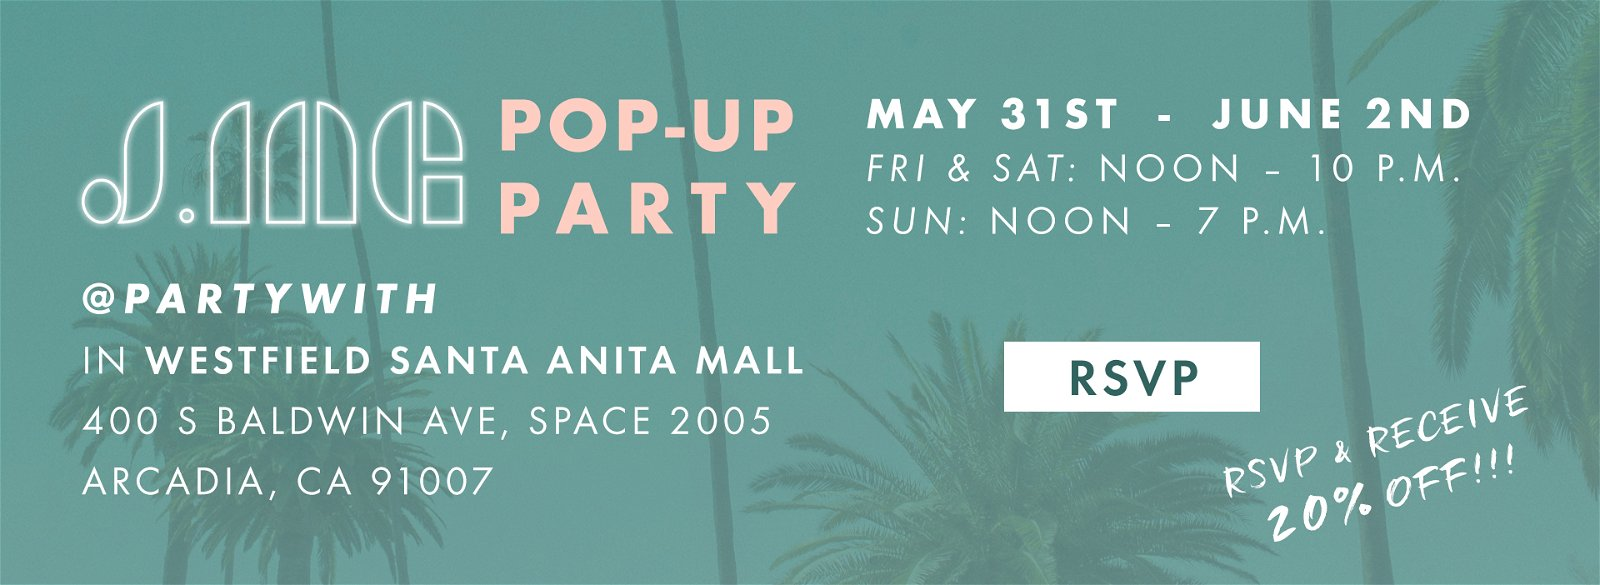 JING PopUp Party